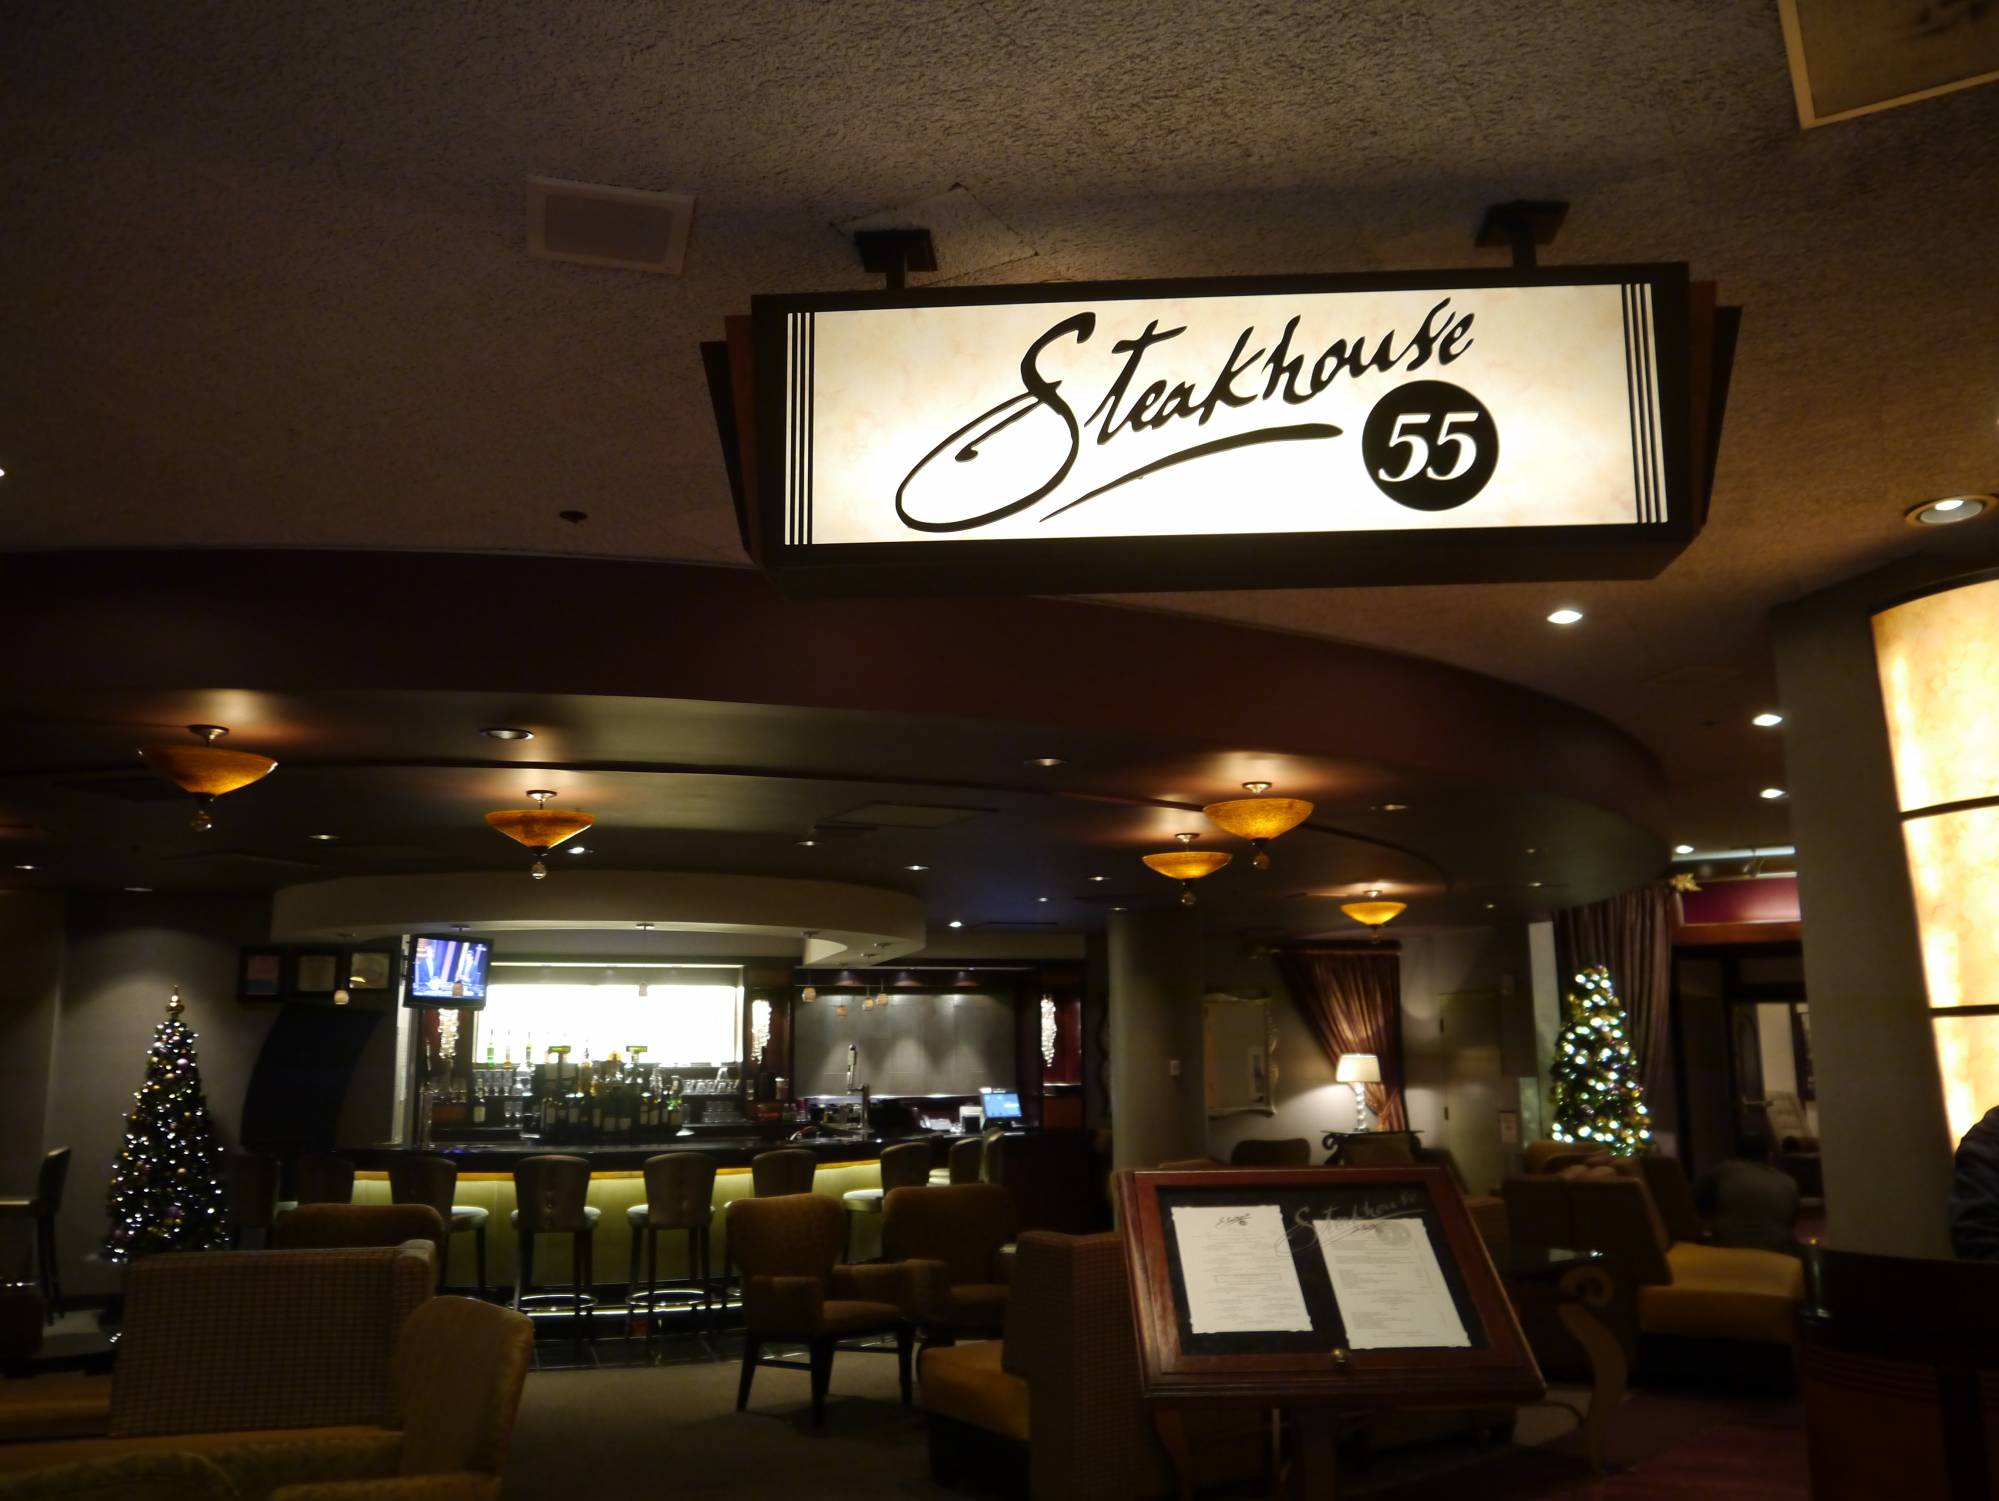 Enjoy a meal even vegetarians will love at Steakhouse 55 |PassPorter.com